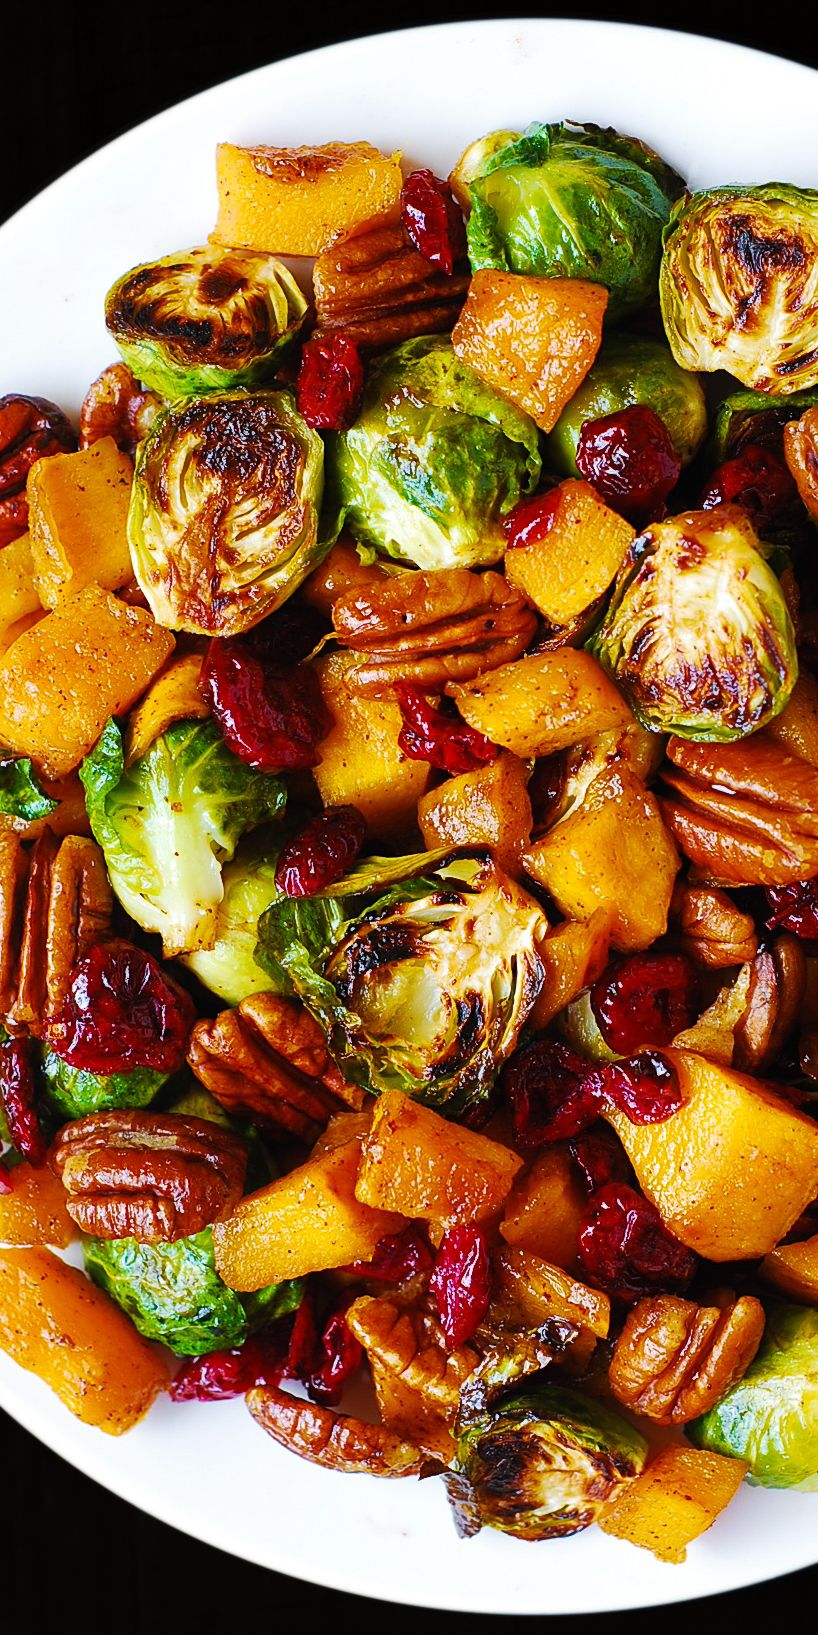 Thanksgiving Side Dish: Roasted Butternut Squash and Brussels sprouts with Pecans and Cranberries #dinnersidedishes